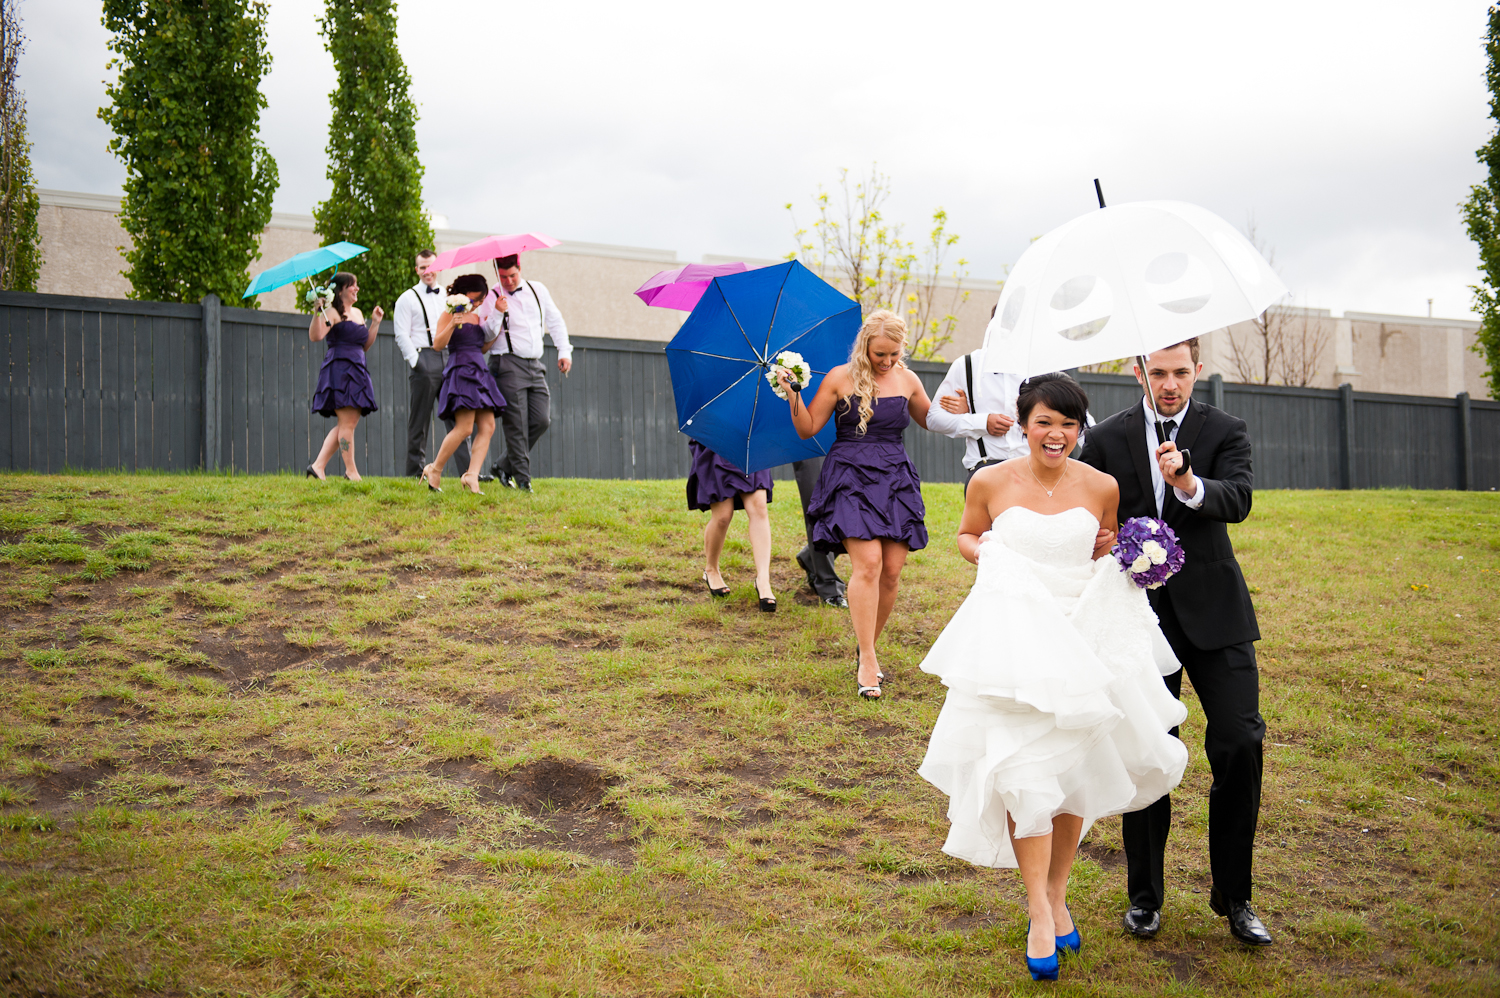 sean-williams-wedding-lifestyle-photography-edmonton-photographer-professional-20.jpg